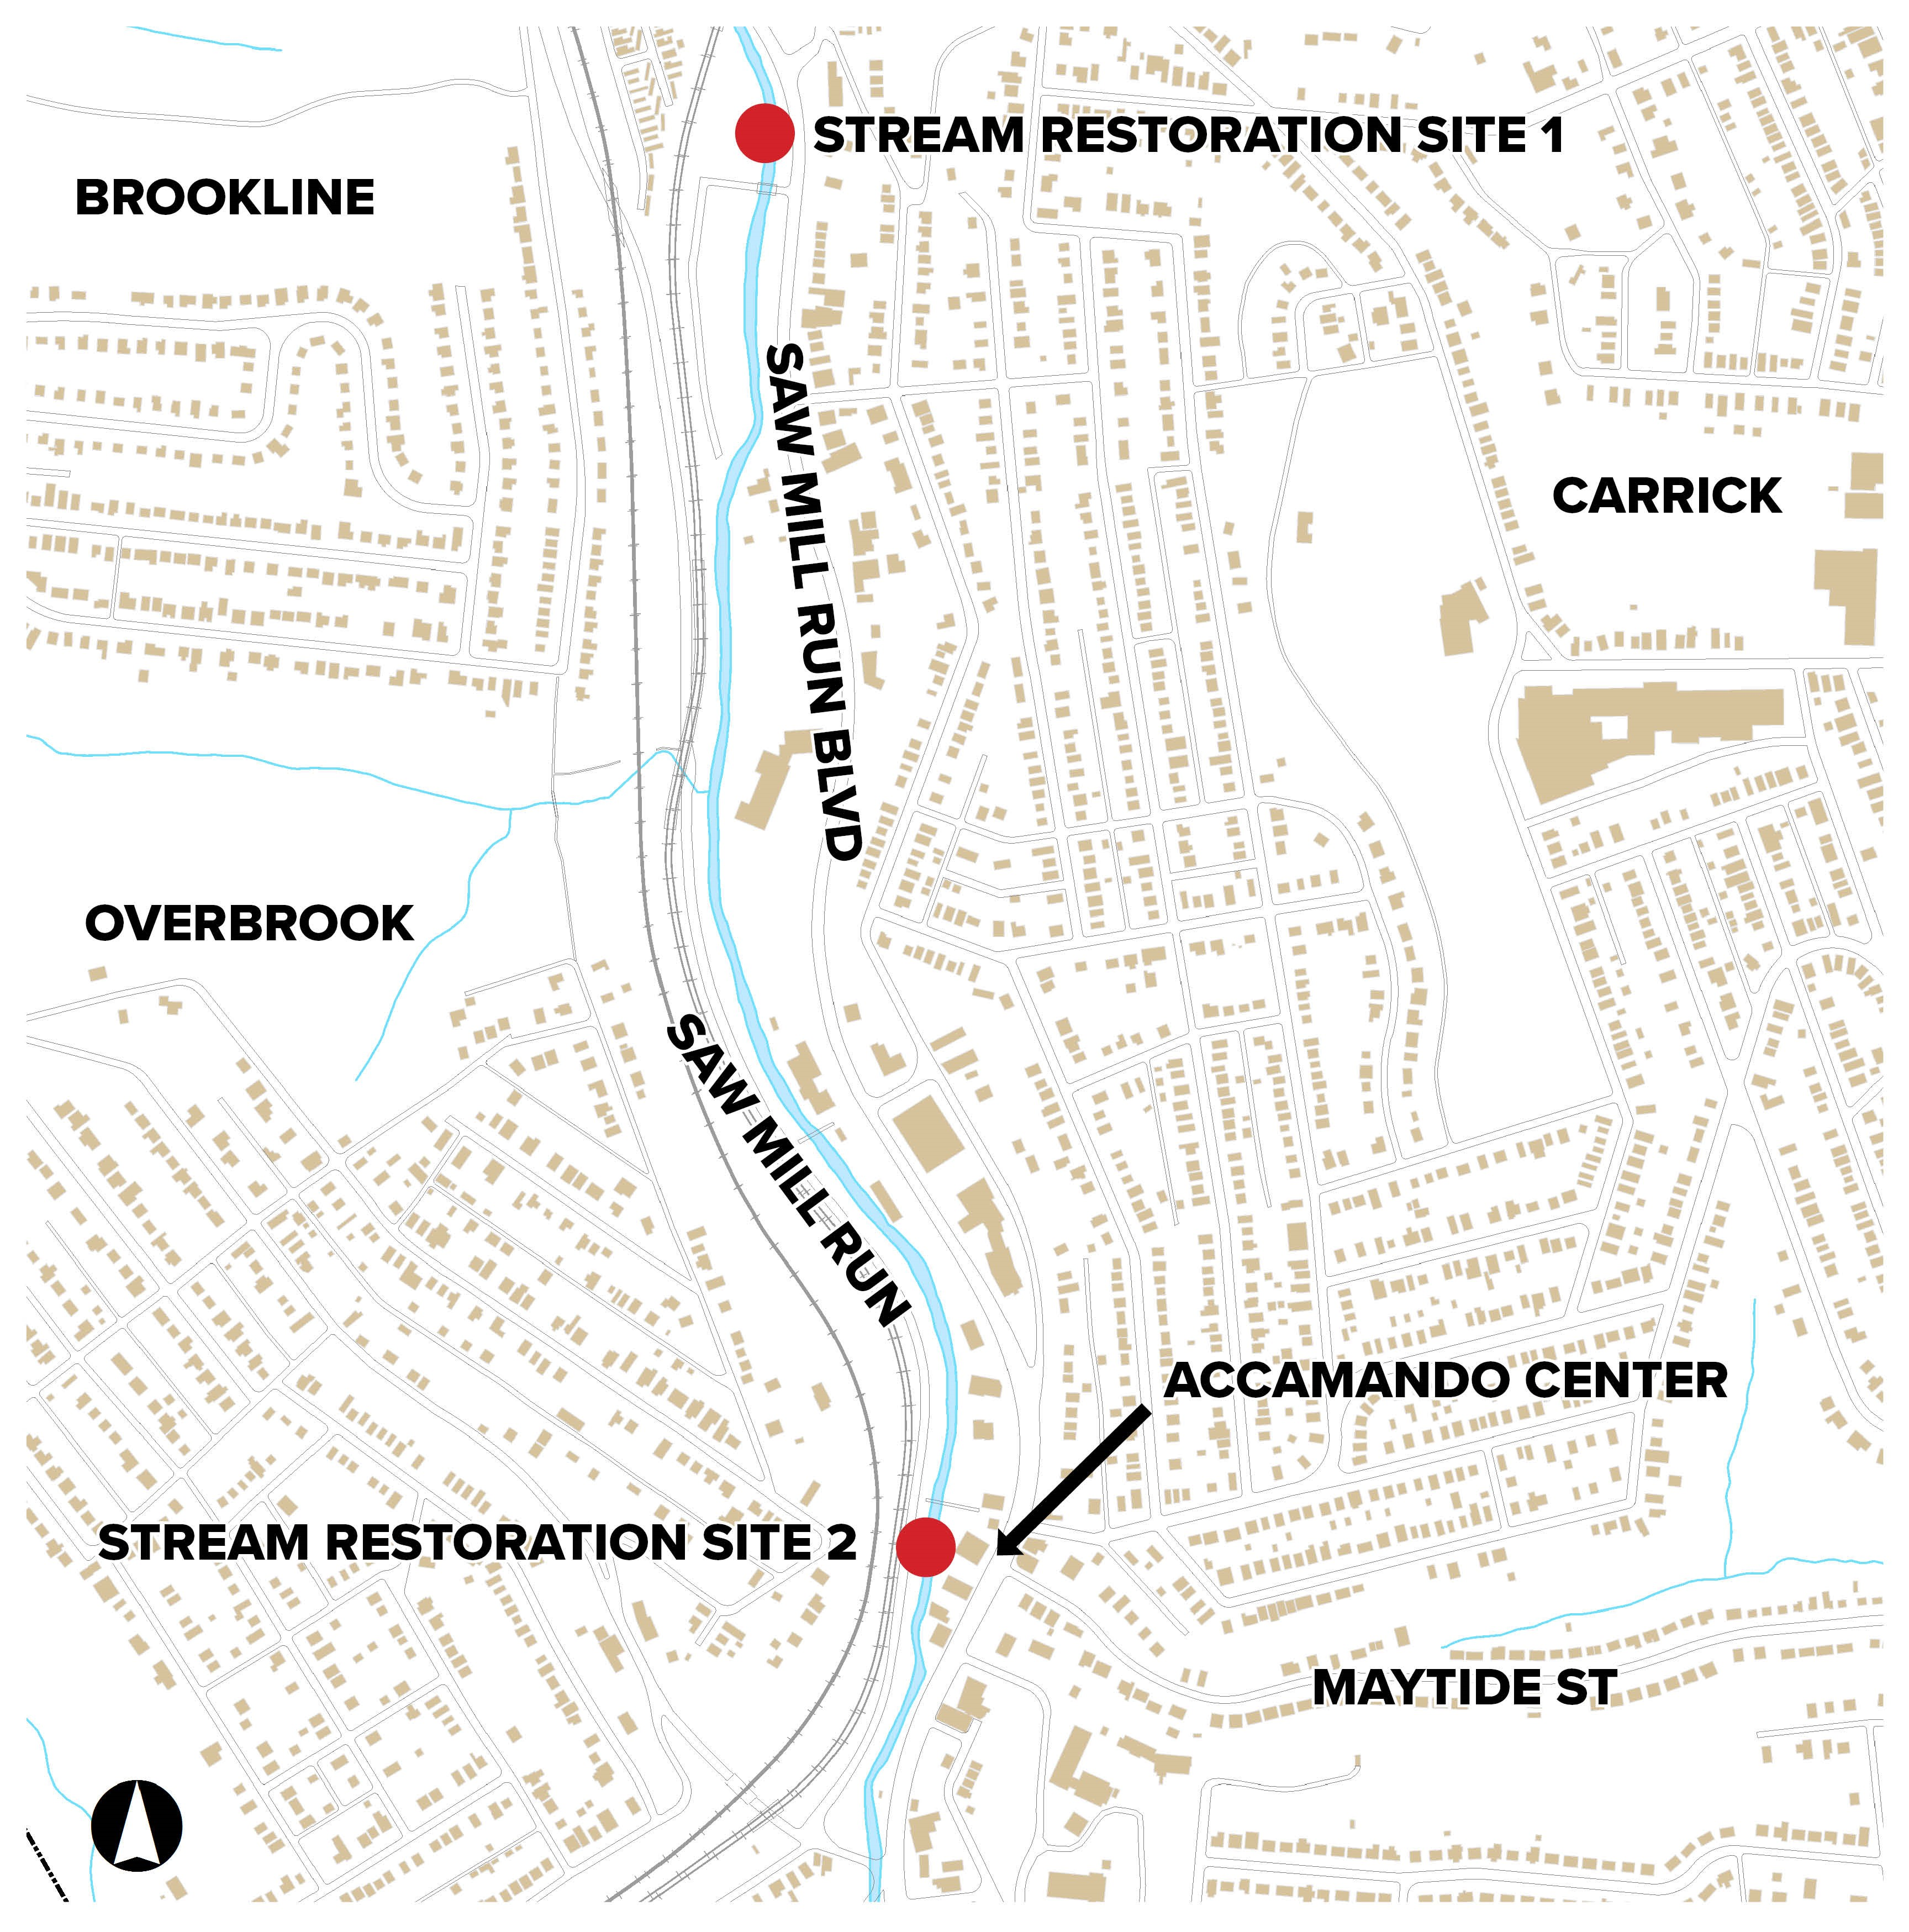 Map of the two Saw Mill Run Stream Restoration Project sites within Overbrook and Carrick